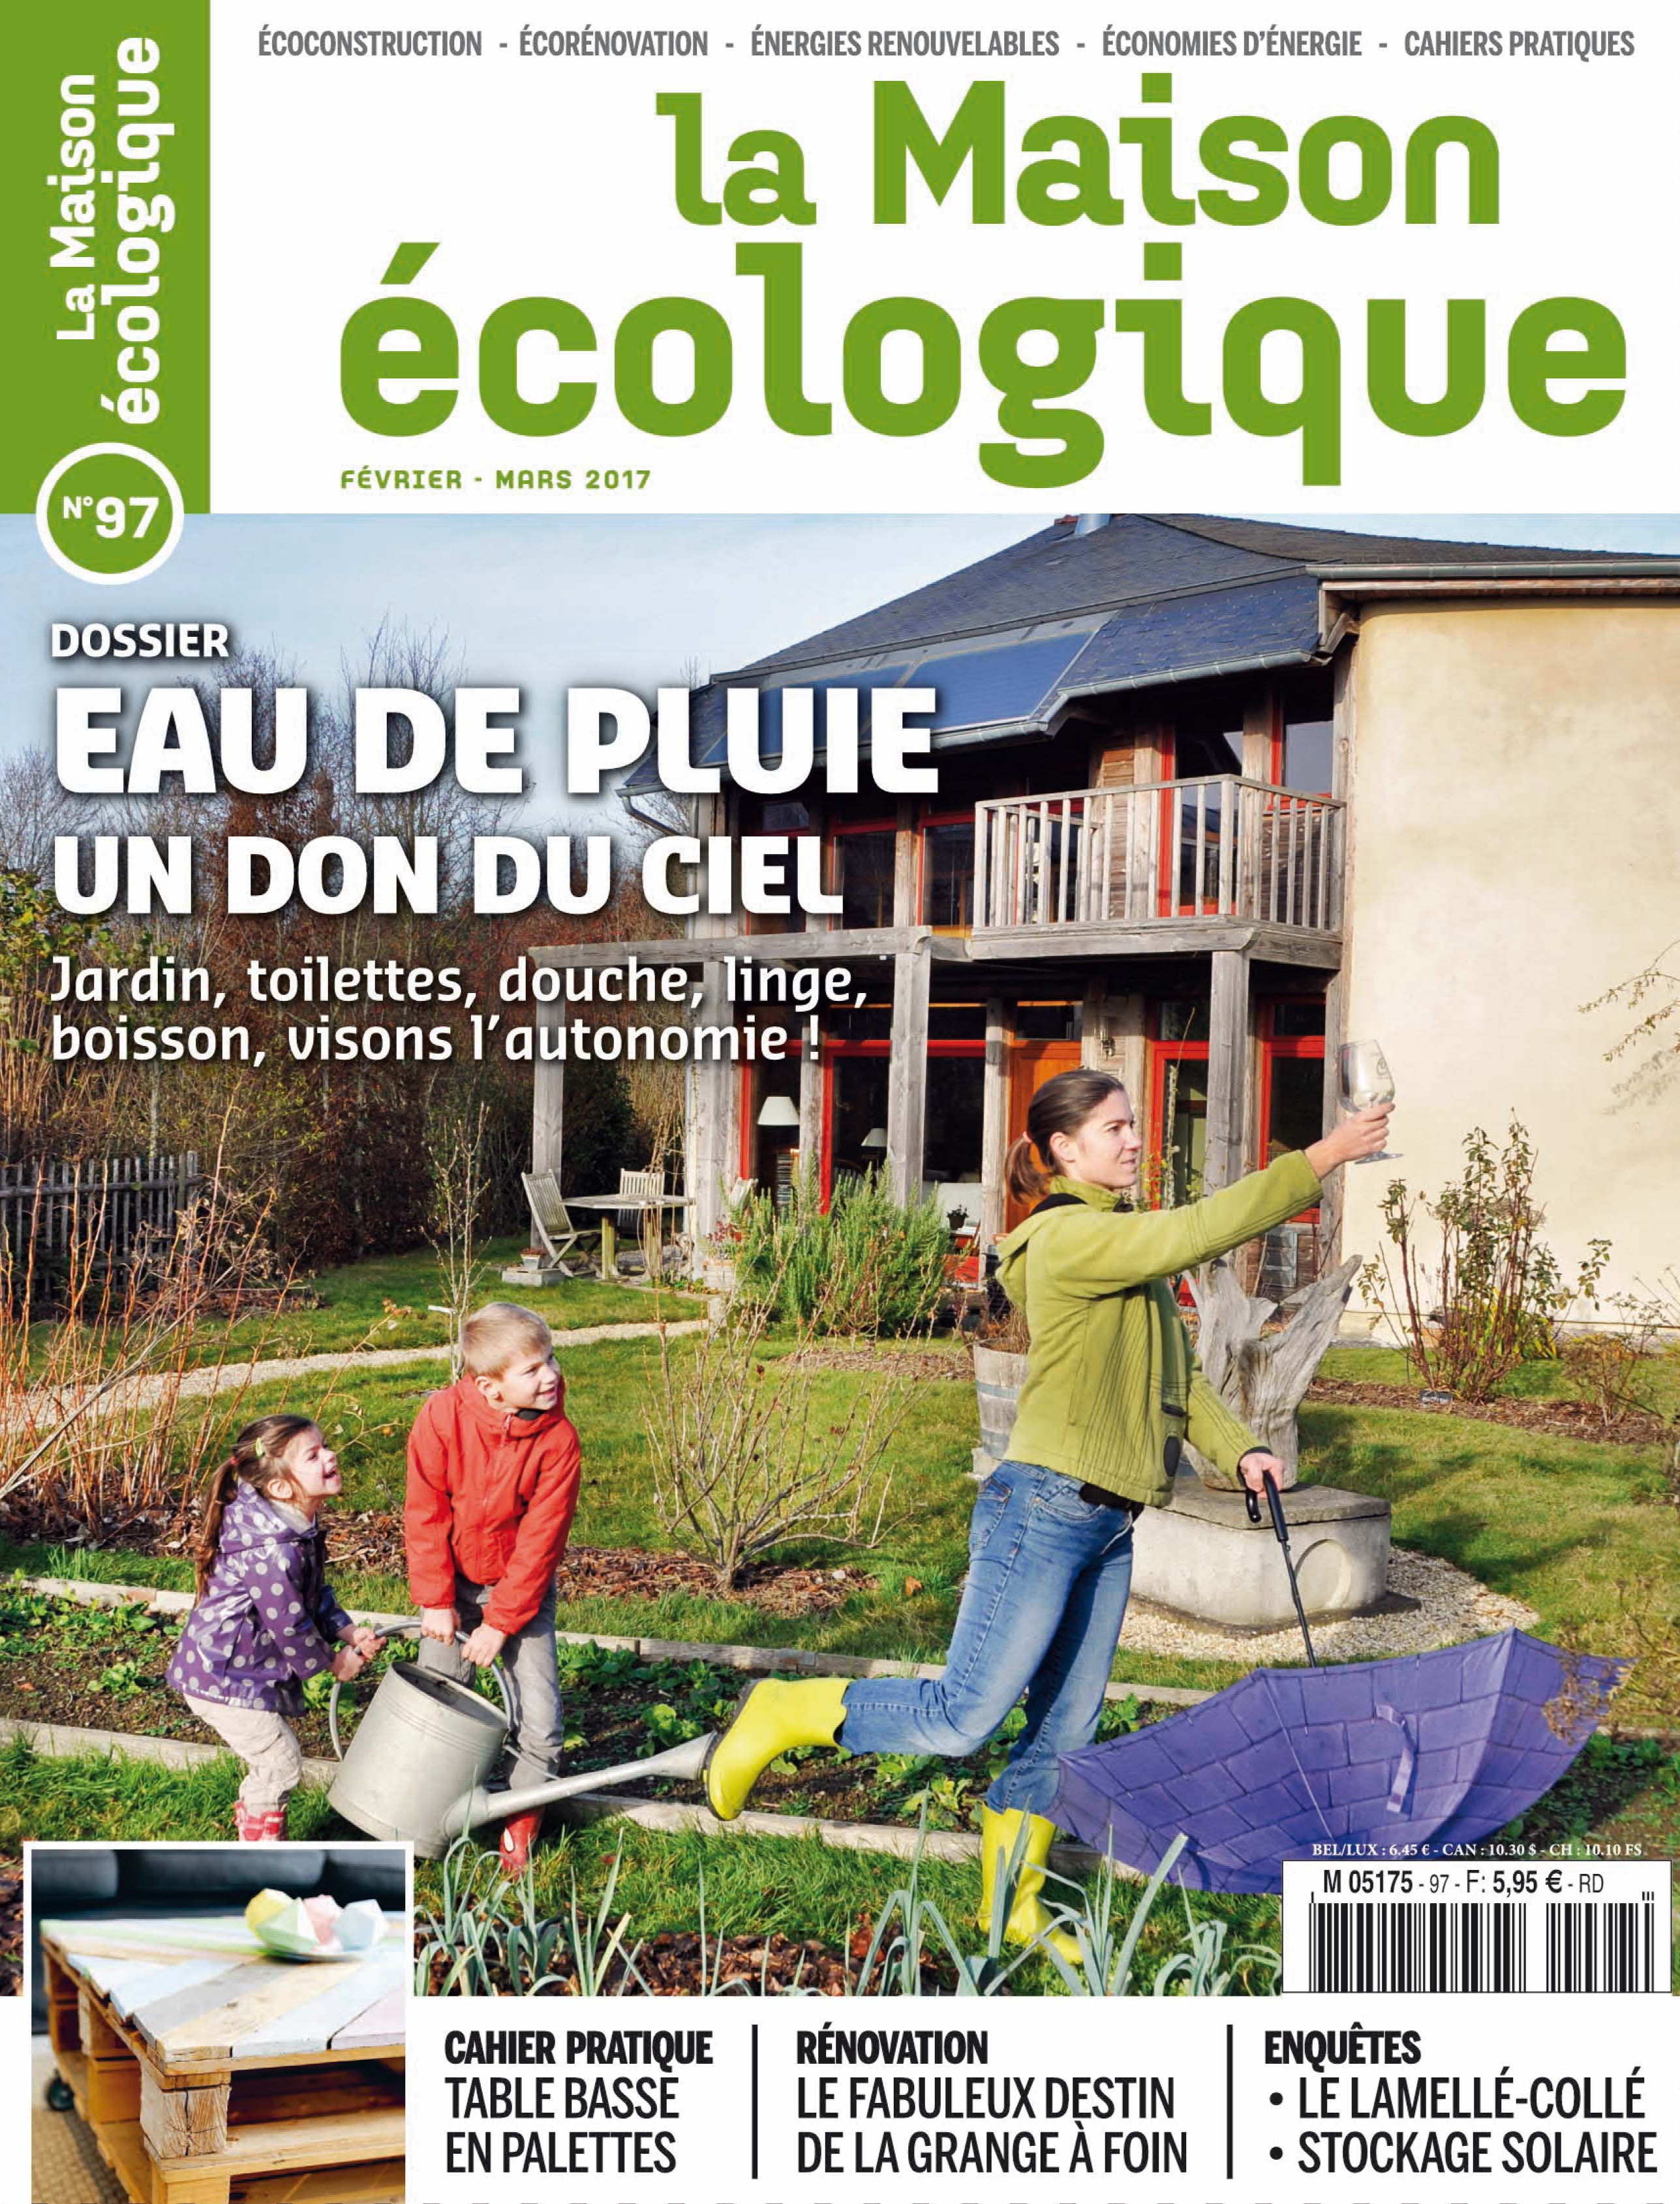 La maison cologique un magazine 100 ind pendant au for Magazine jardinage